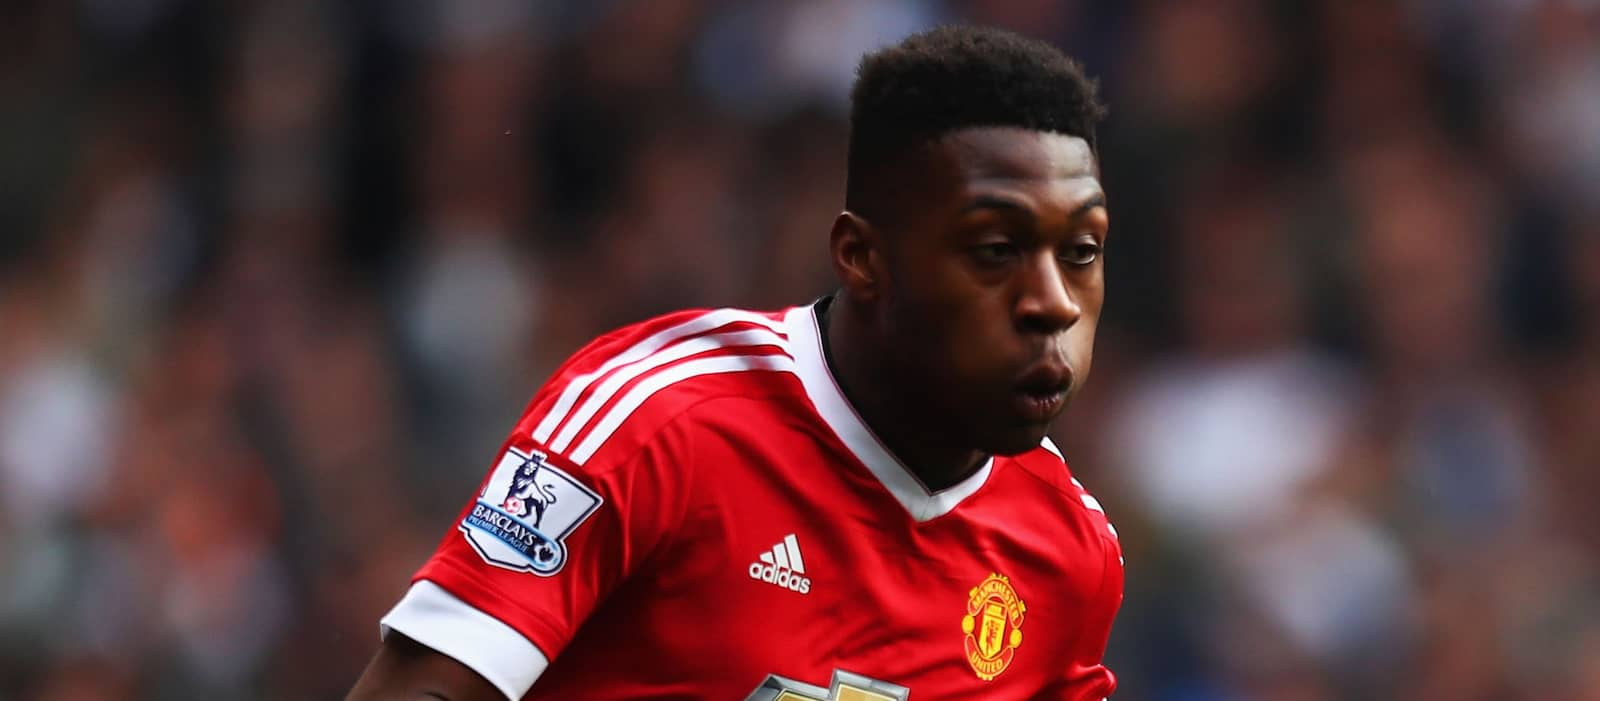 Timothy Fosu-Mensah: I'll play anywhere Jose Mourinho wants me to